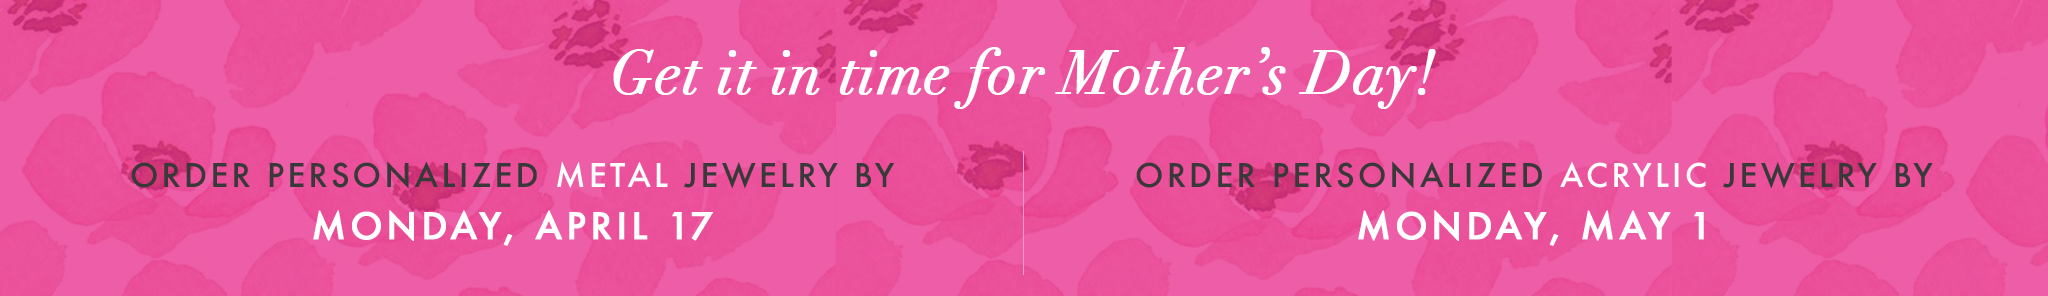 Moon and Lola - Mother's Day Cutoff Dates for Personalized Products